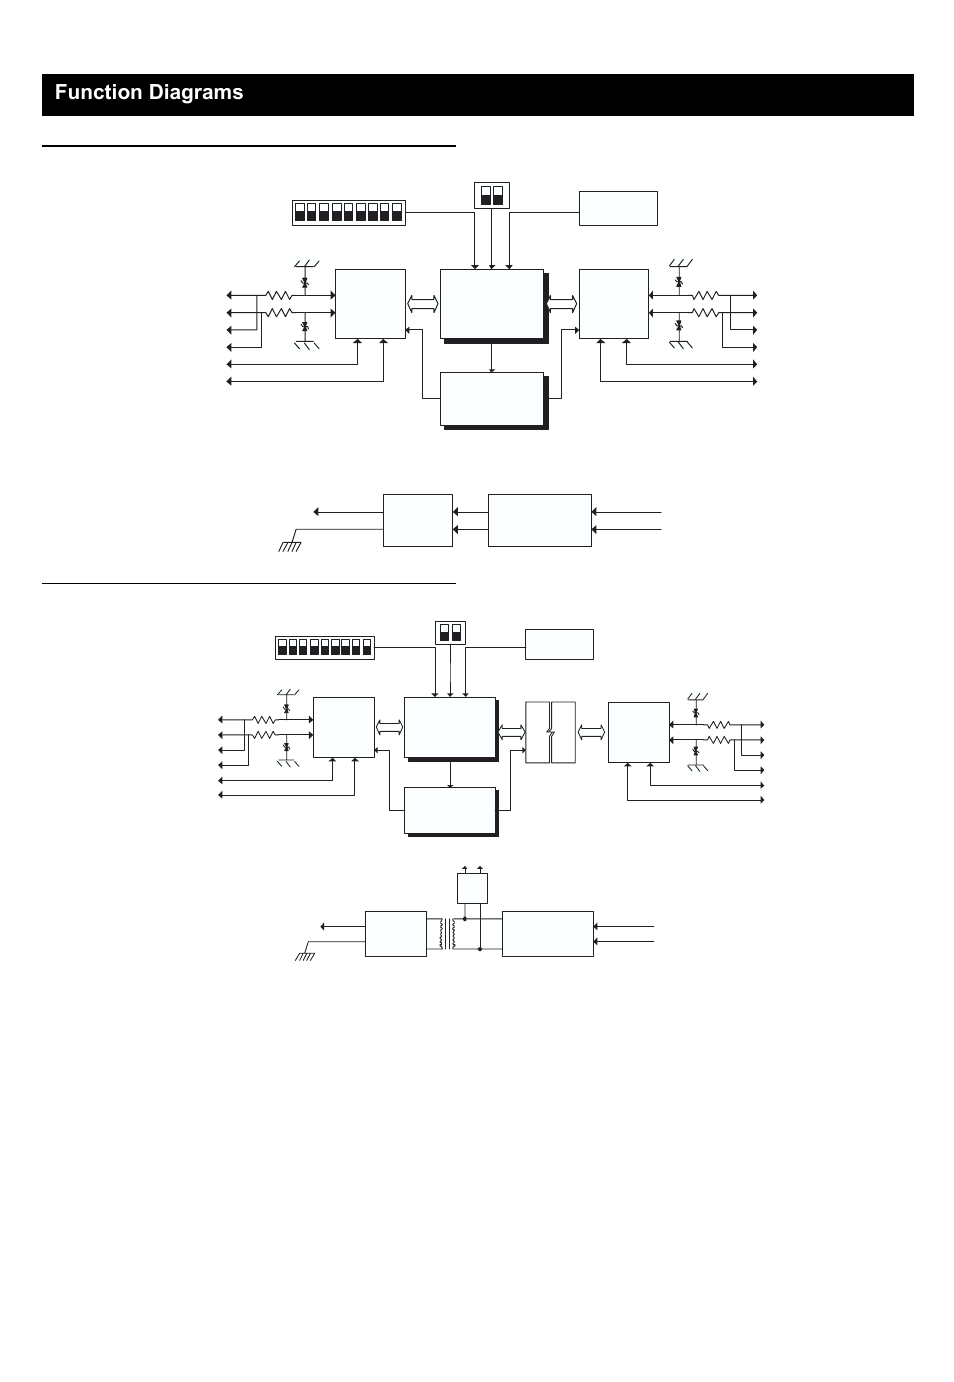 Function Diagrams Bb Electronics Adam 4520 Manual User John Deere Wiring Diagram Page 5 6